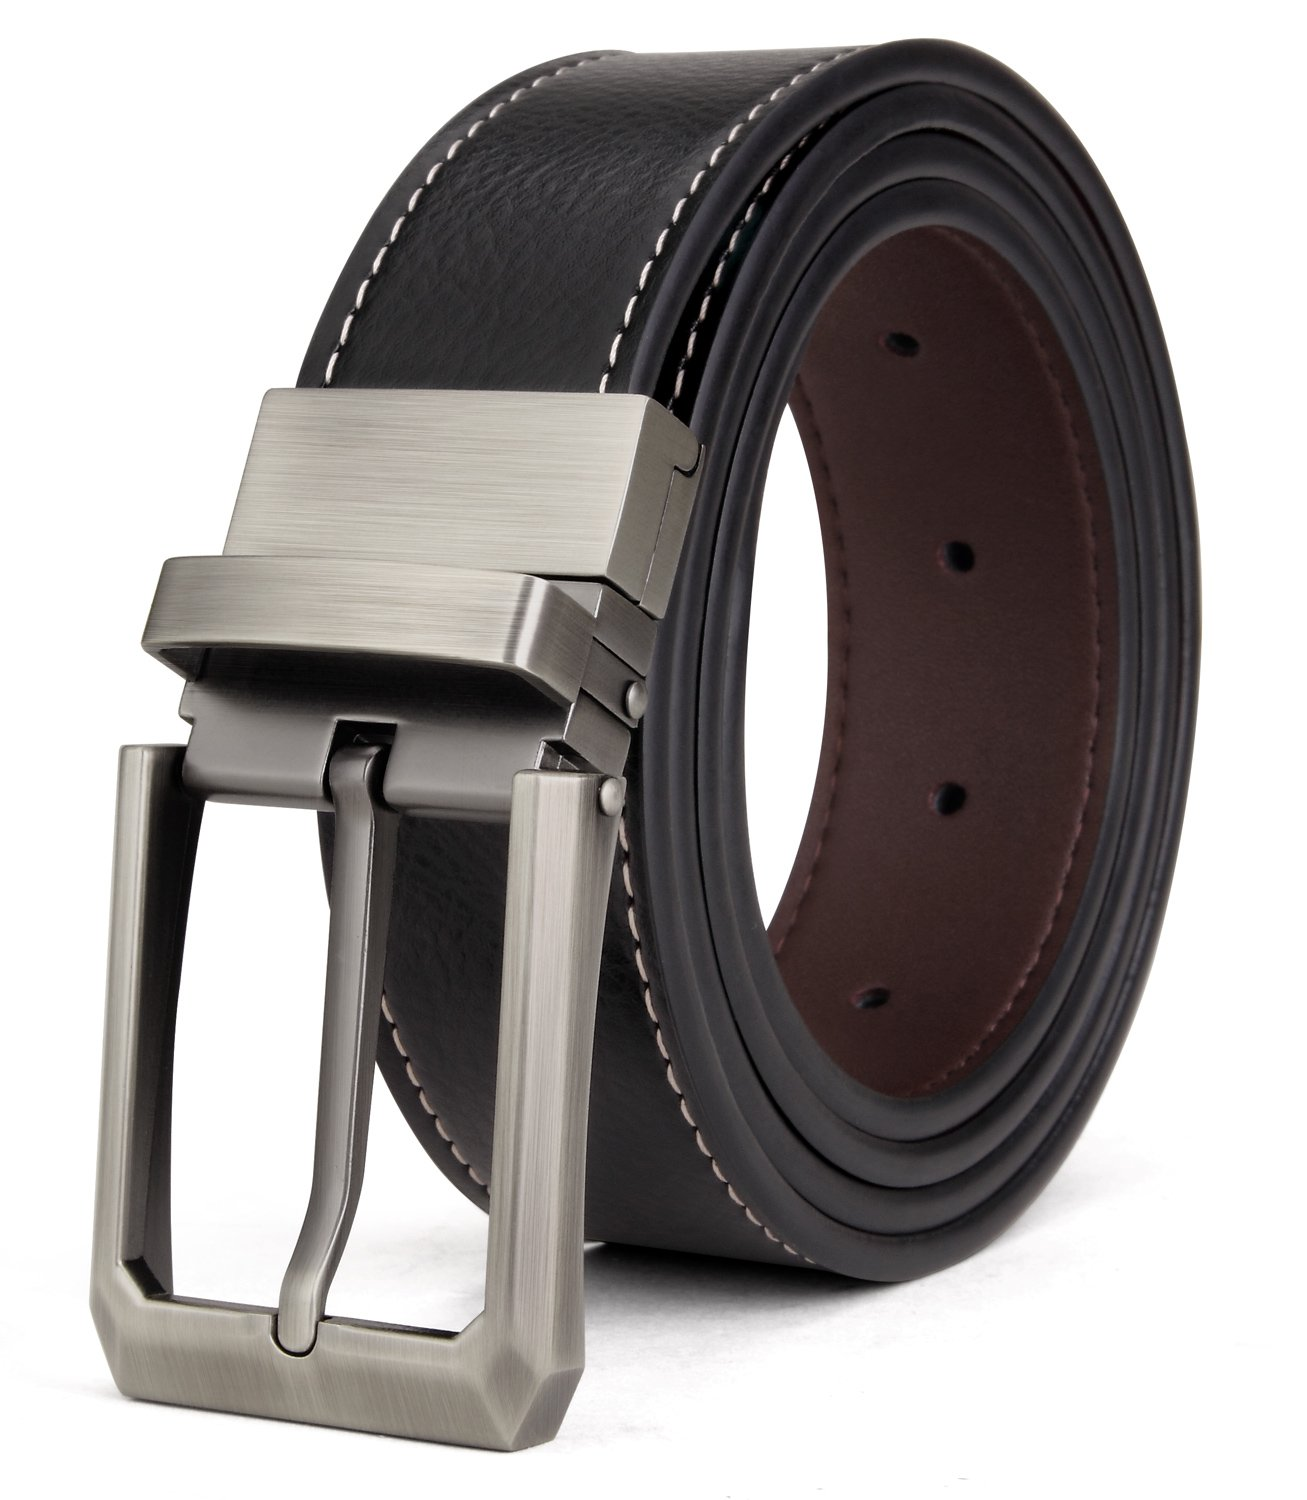 Tonly Monders ACCESSORY メンズ B077VFPG3H L|Plating Rotated Buckle Plating Rotated Buckle L